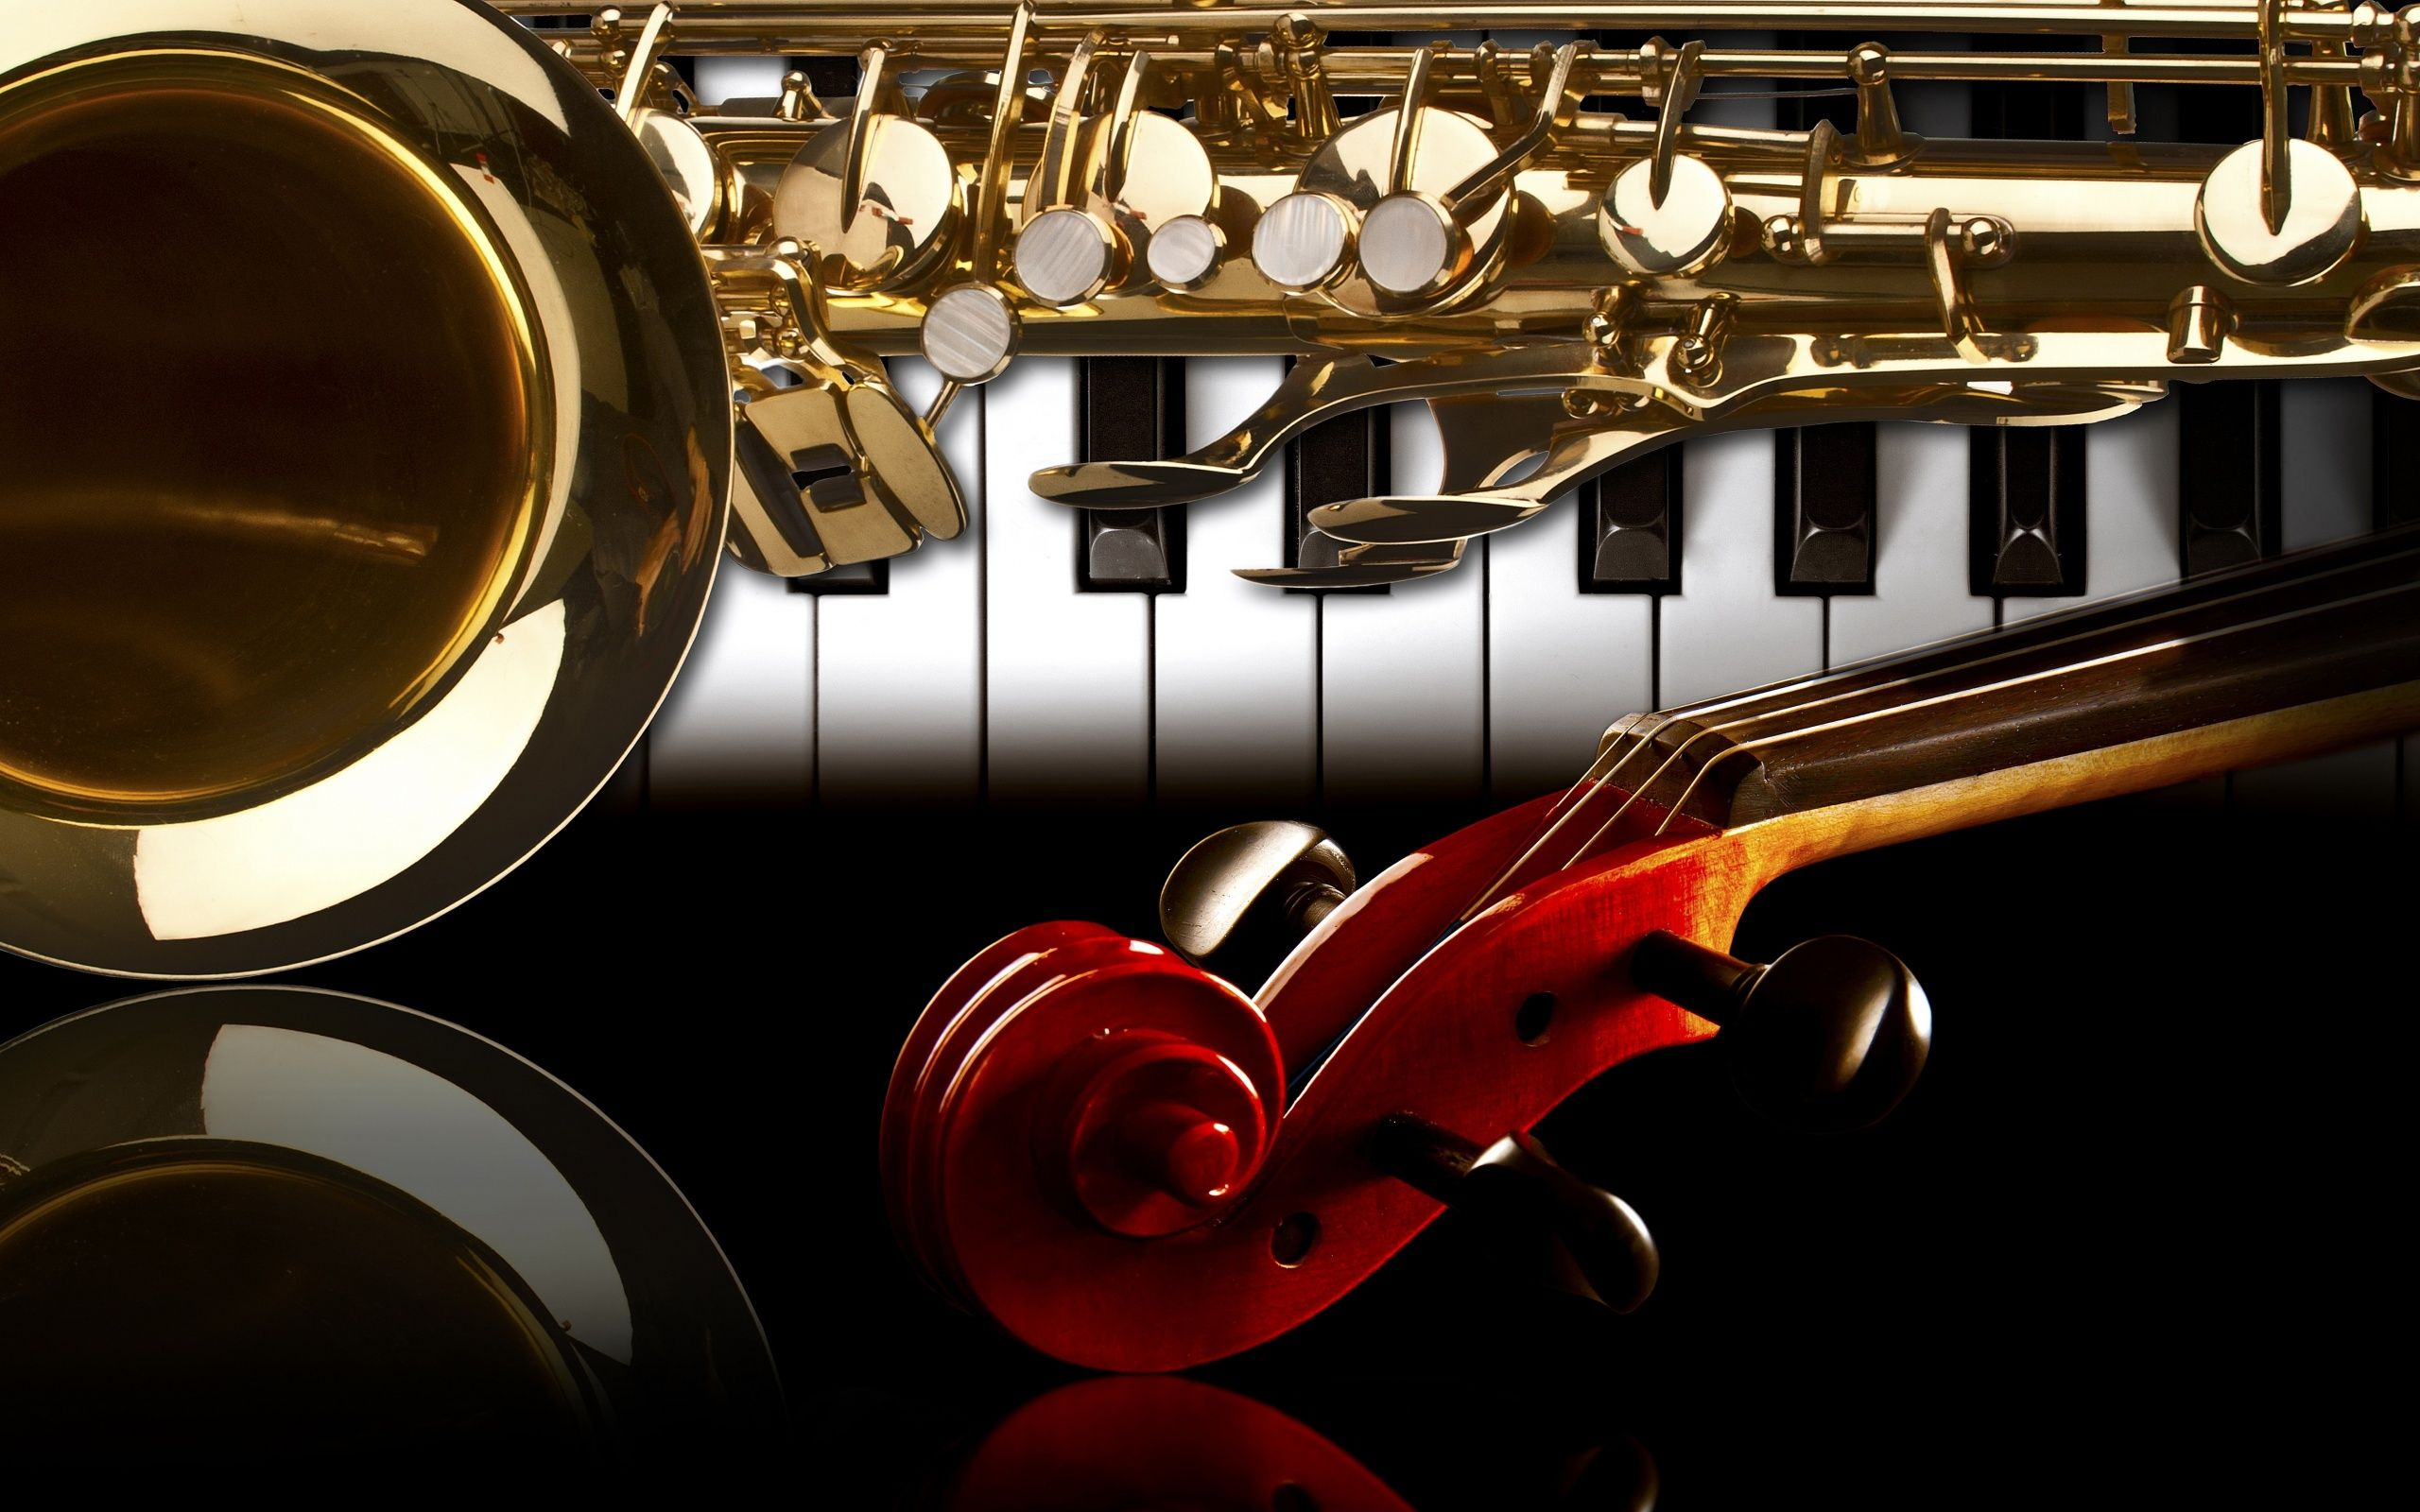 Music Instruments Wallpapers Google Search Music Instruments Instruments Saxophone